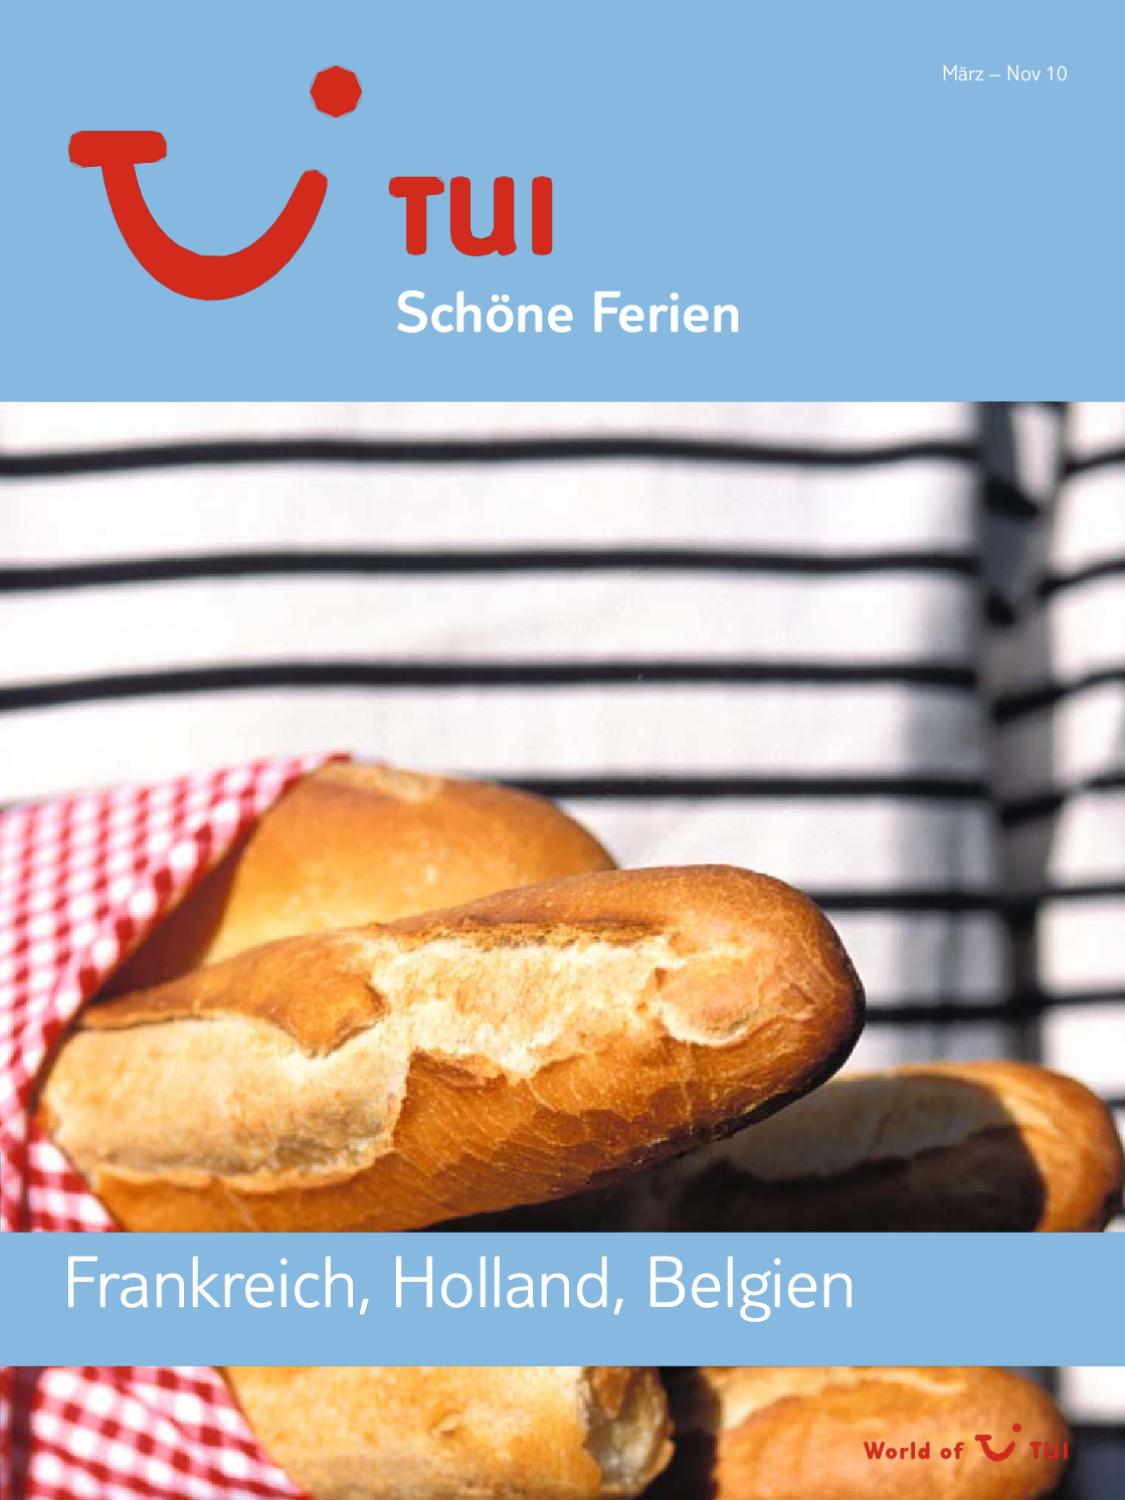 TUI_SfFrankreichHollandBelgien_So10 by Wulf Seidel - issuu